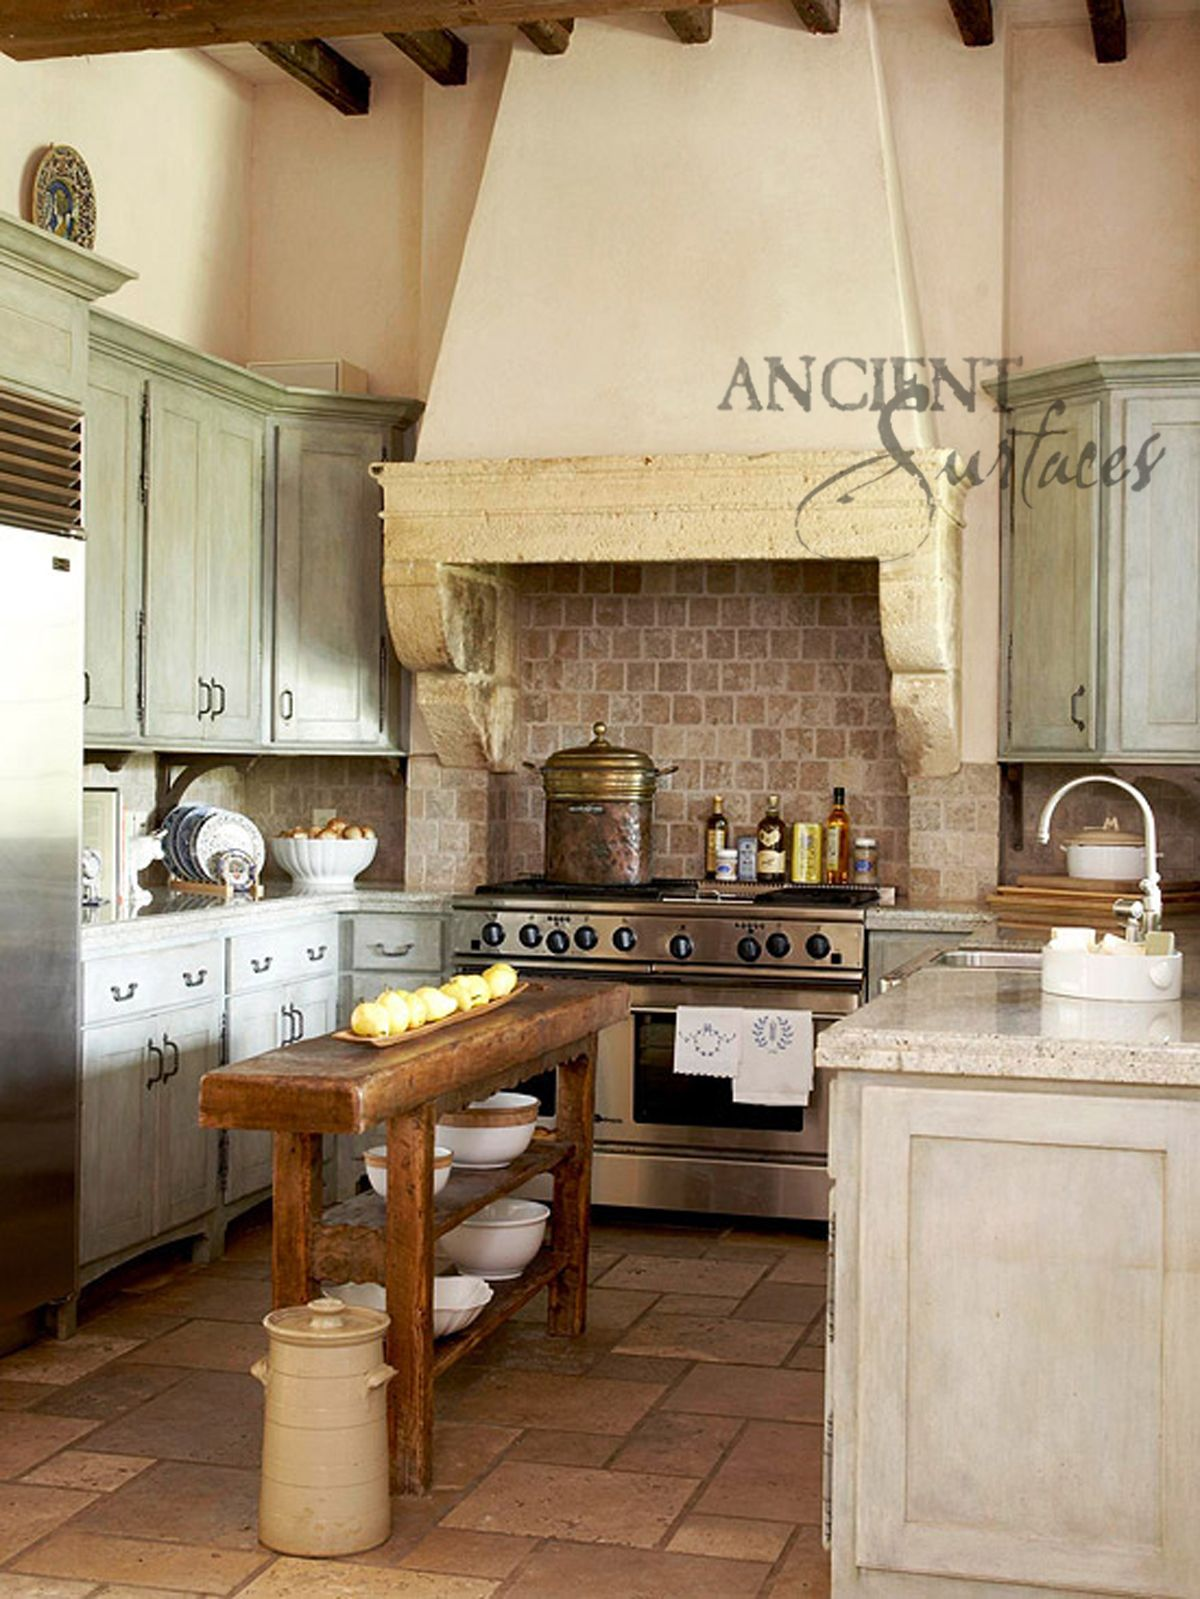 A Unique Collection Of Both Ancient And New Stone Architectural Antique Building And Decor French Country Kitchens Kitchen Island Design French Country Kitchen